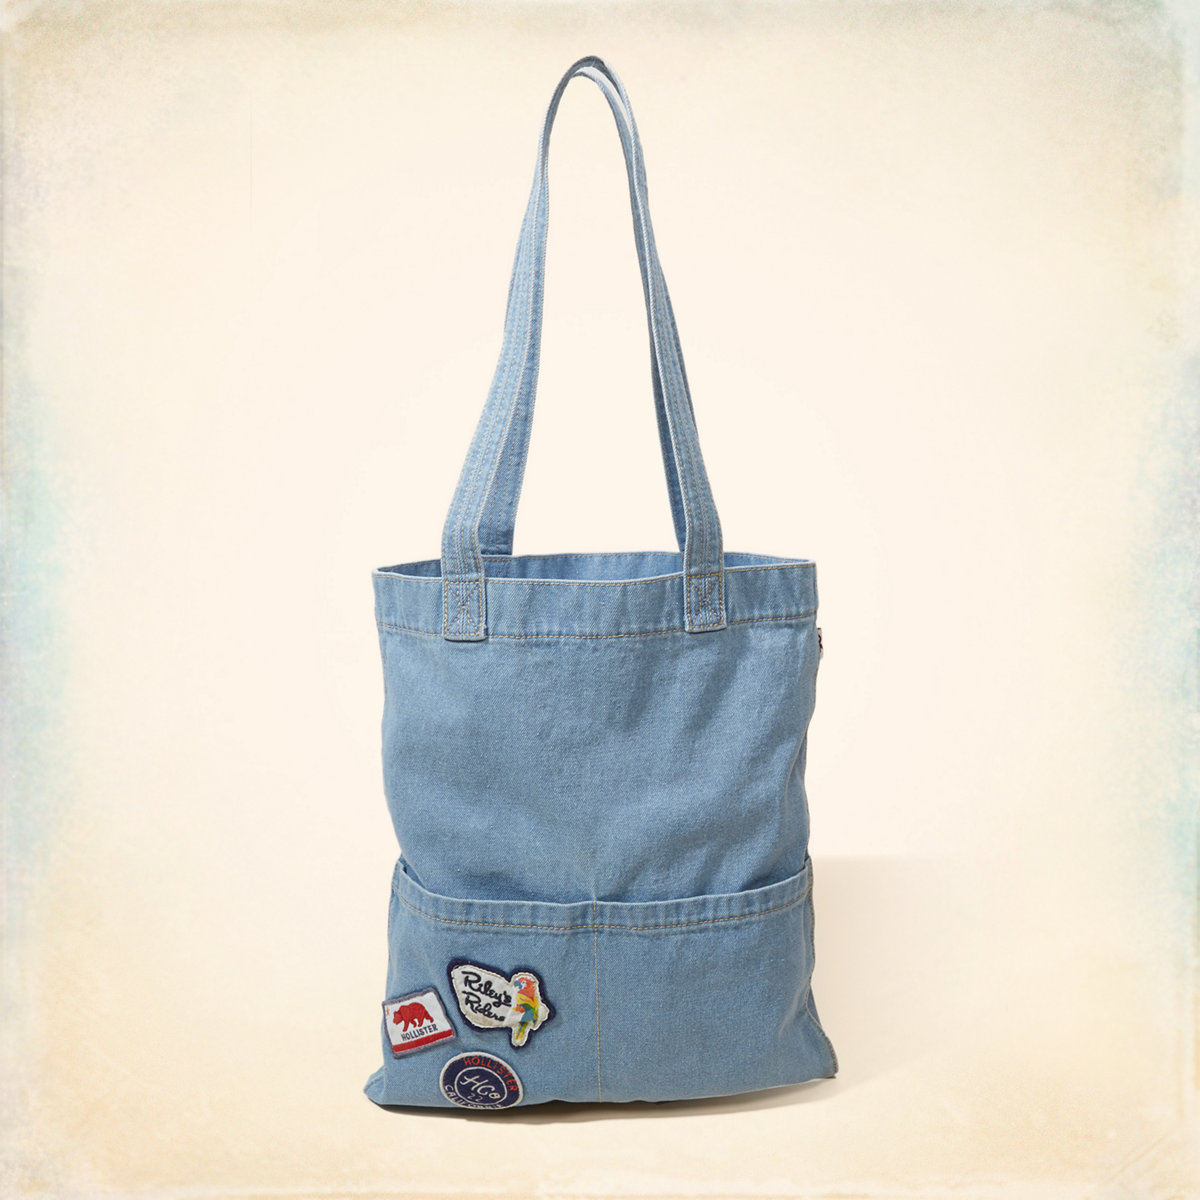 Patch Denim Tote Bag